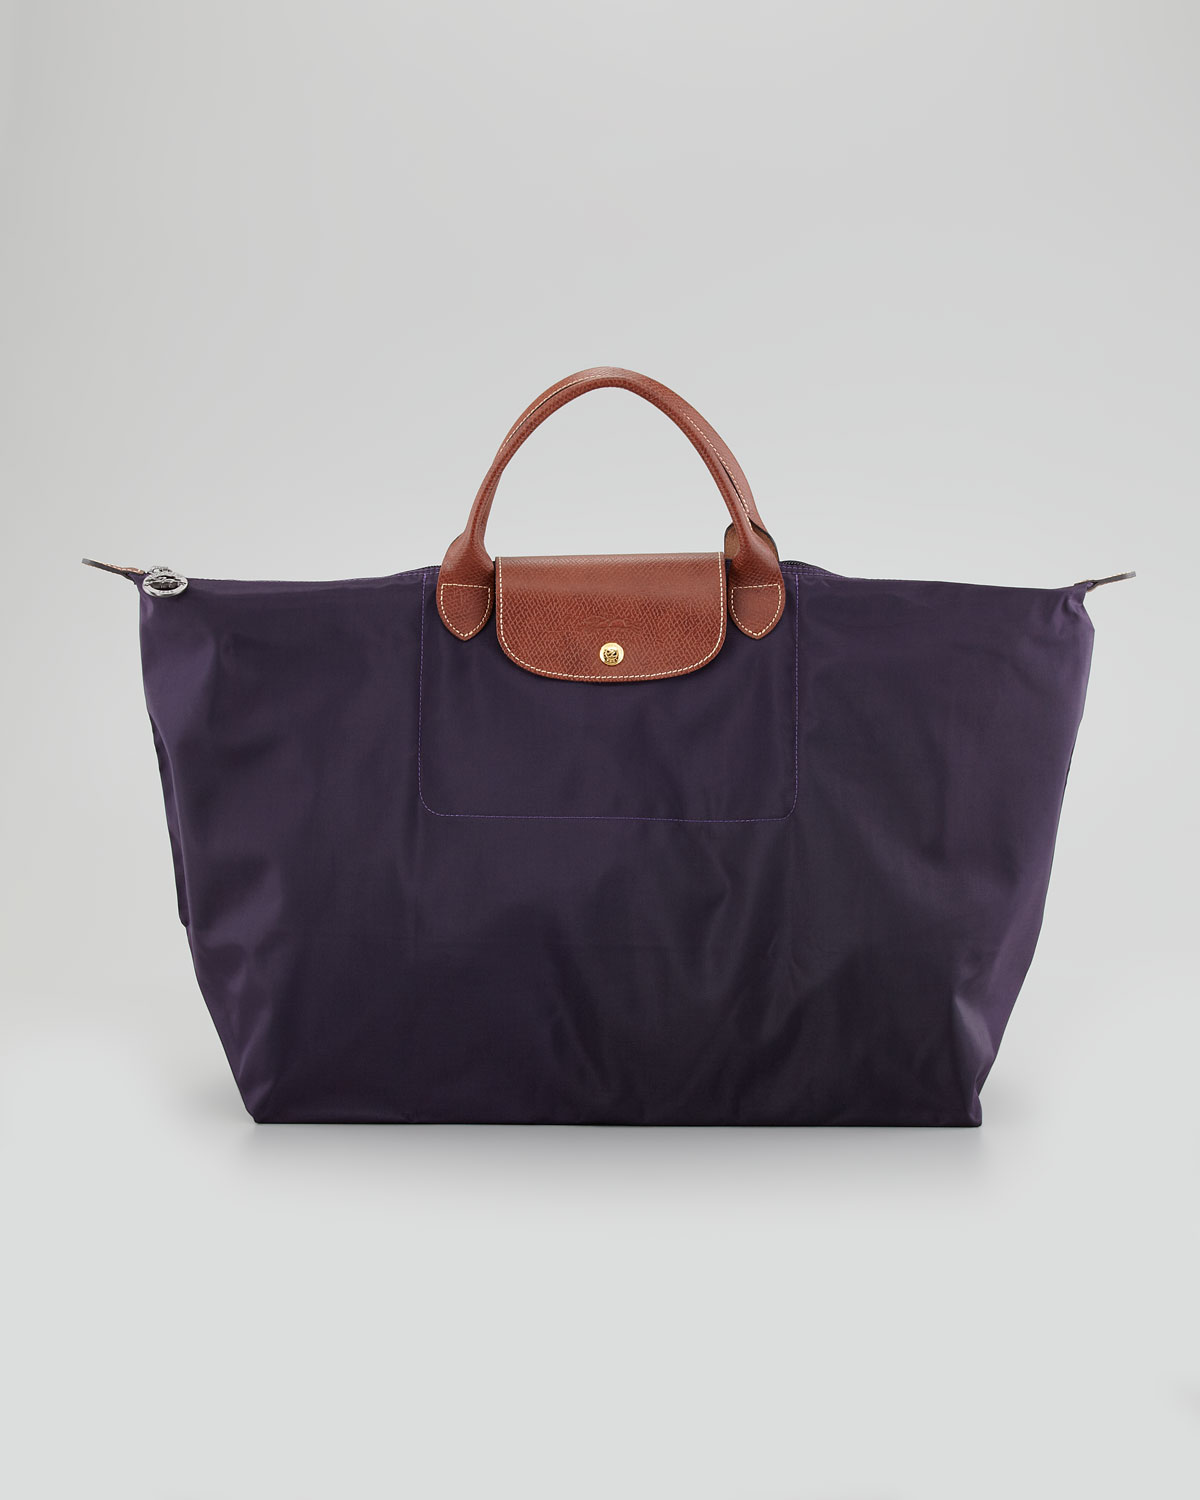 Longchamp Le Pliage Monogram Large Travel Tote Bag in Purple